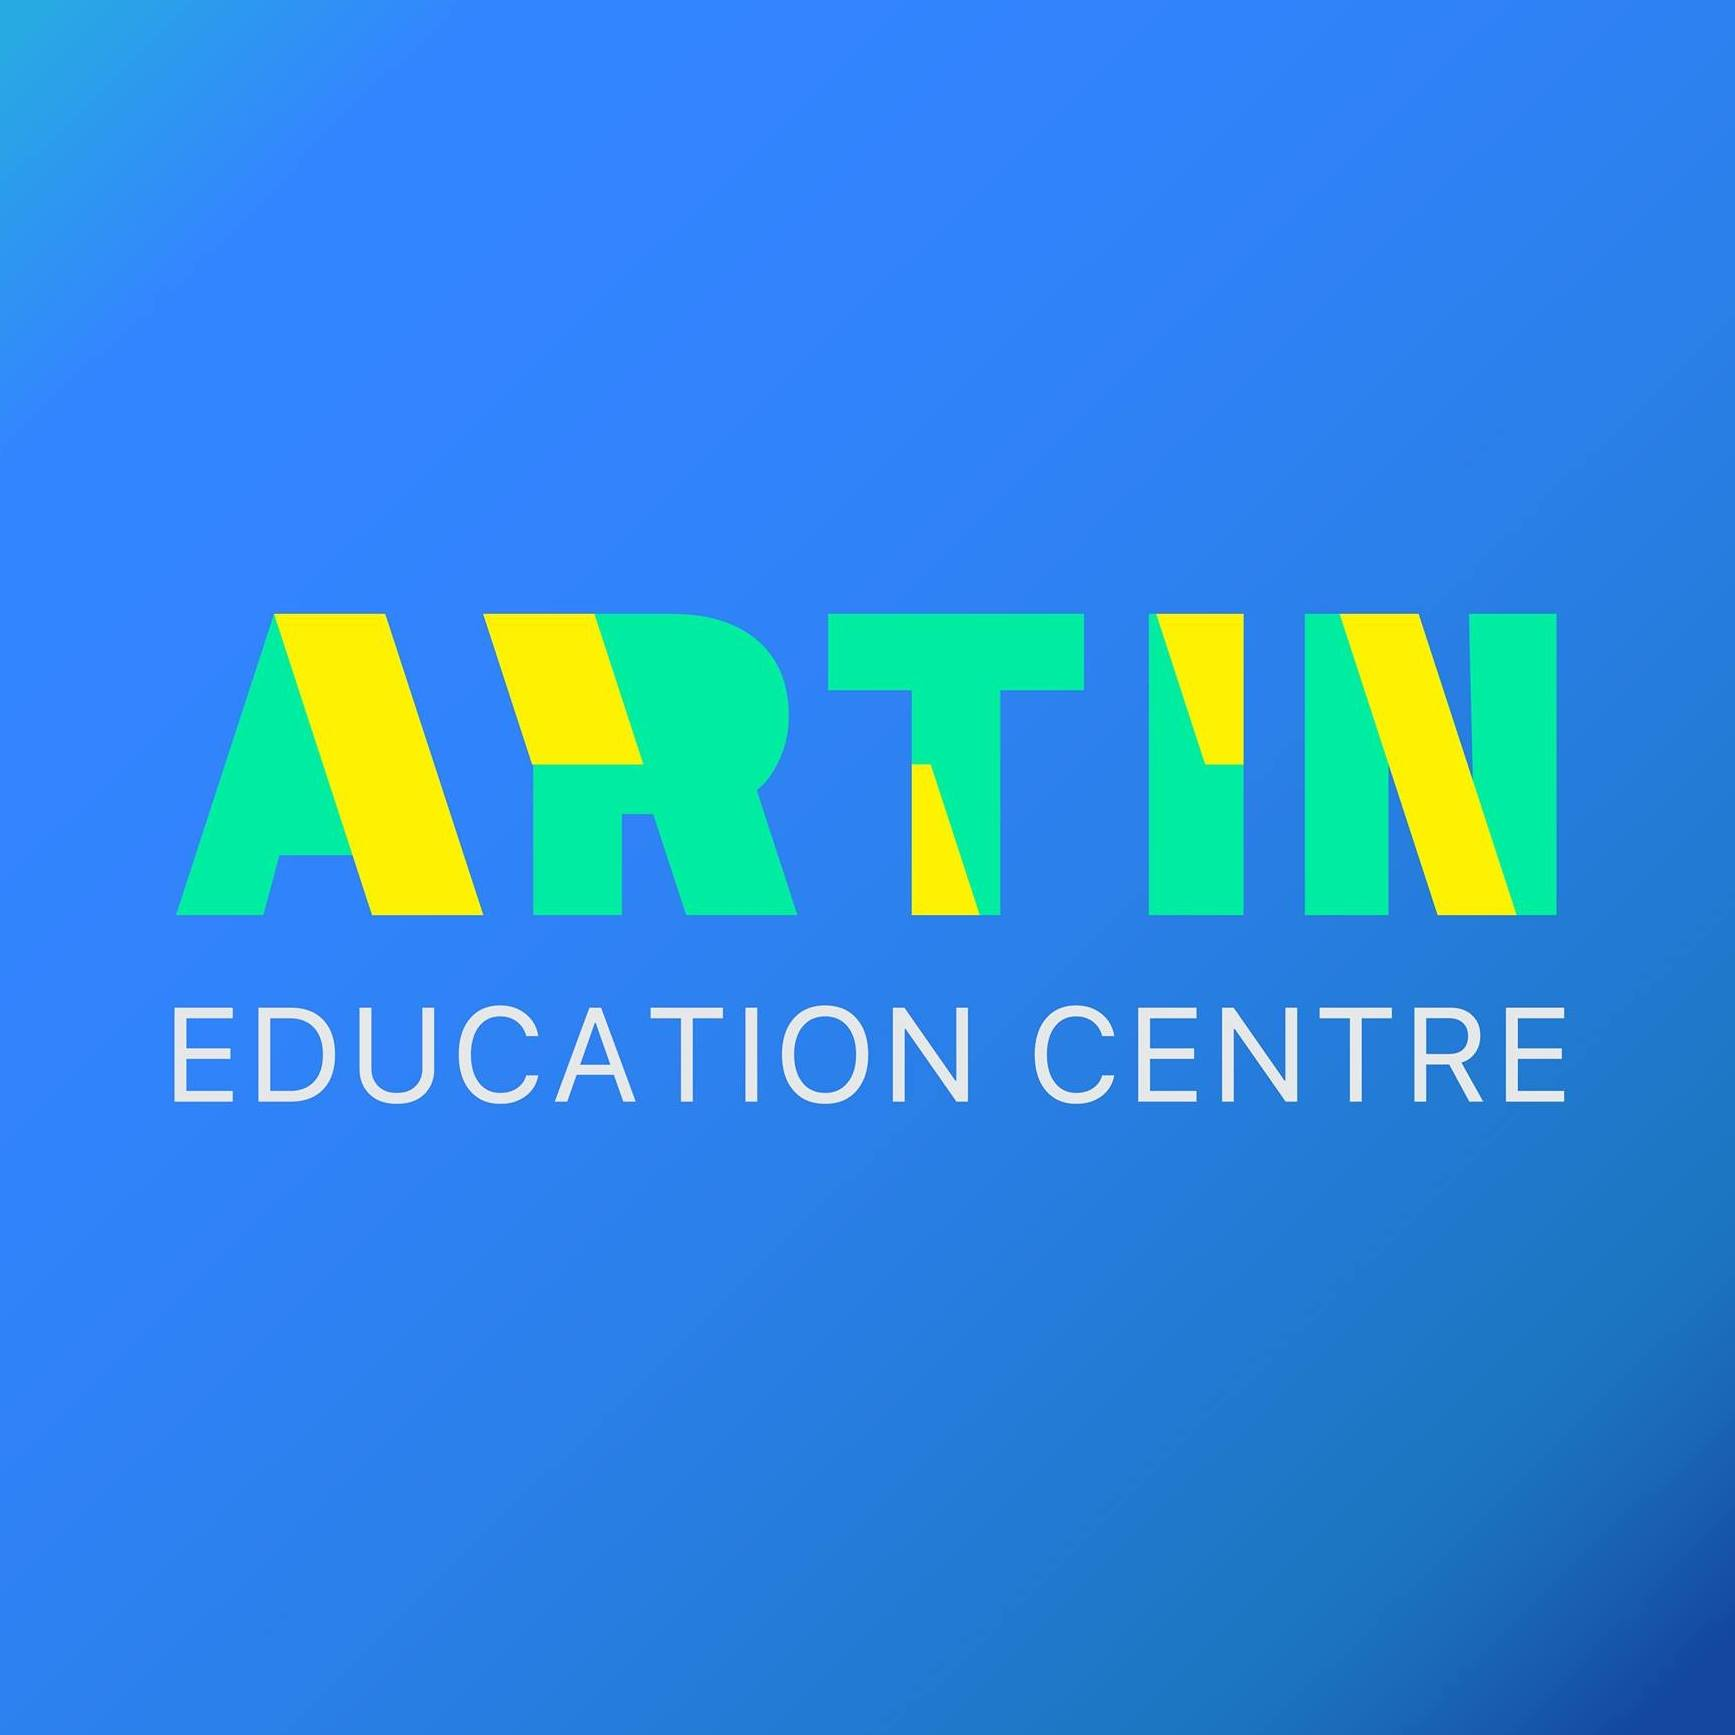 藝研教育 Artin Education